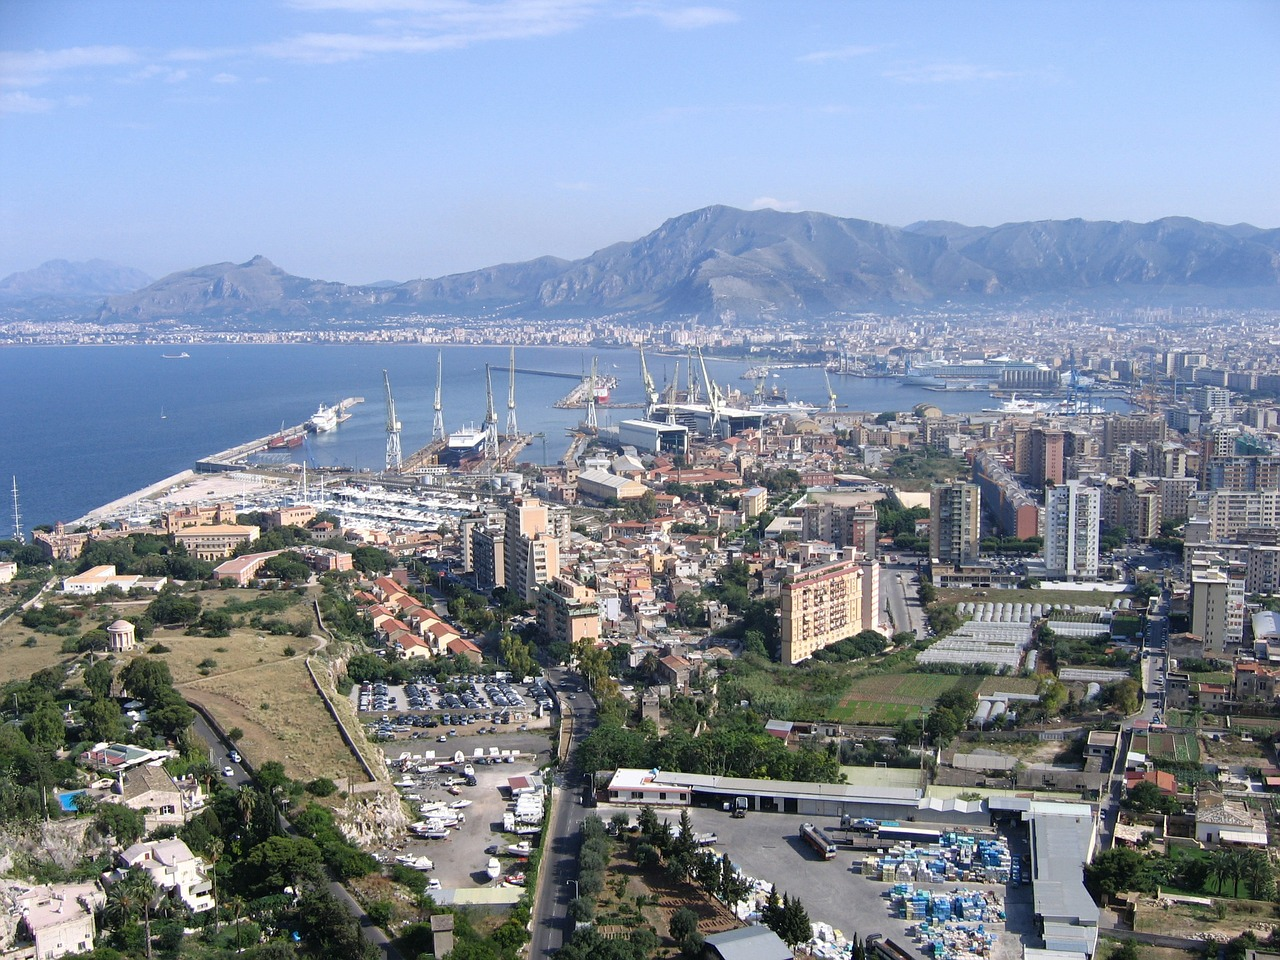 palermo,sicily,porto,view,landscape,city,chief town,sea ​​medterranean,overview,sea,free pictures, free photos, free images, royalty free, free illustrations, public domain